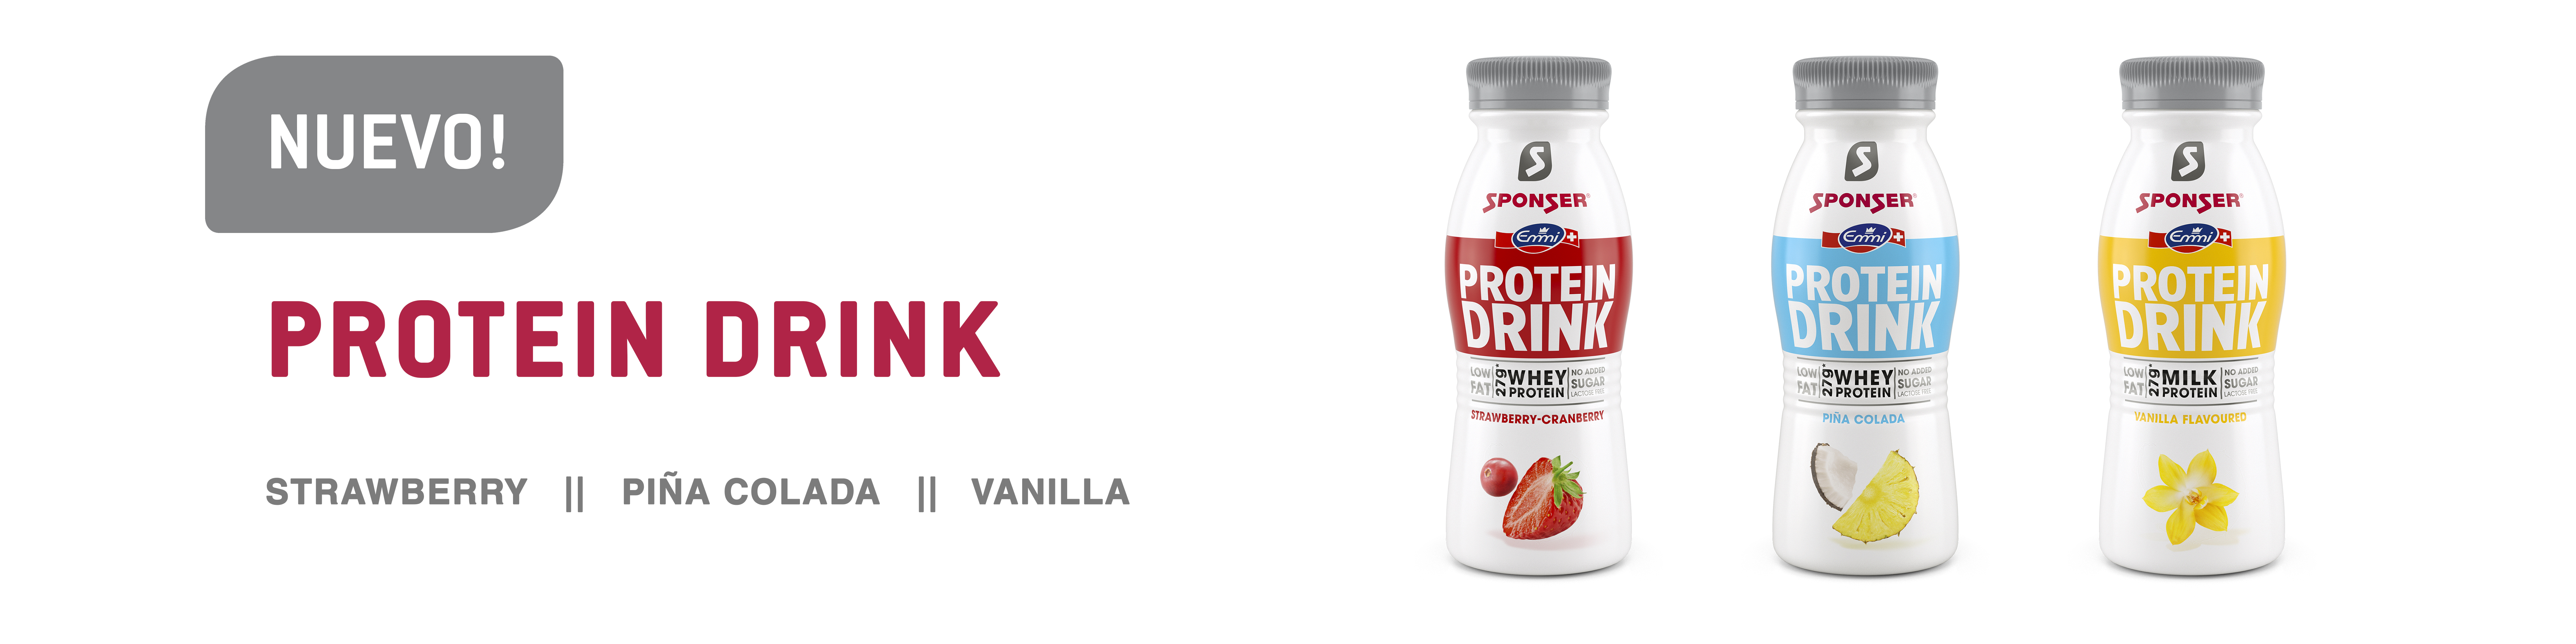 /GEONATLIFE SPORT PRODUCTS & EVENTS - New - Protein Drink